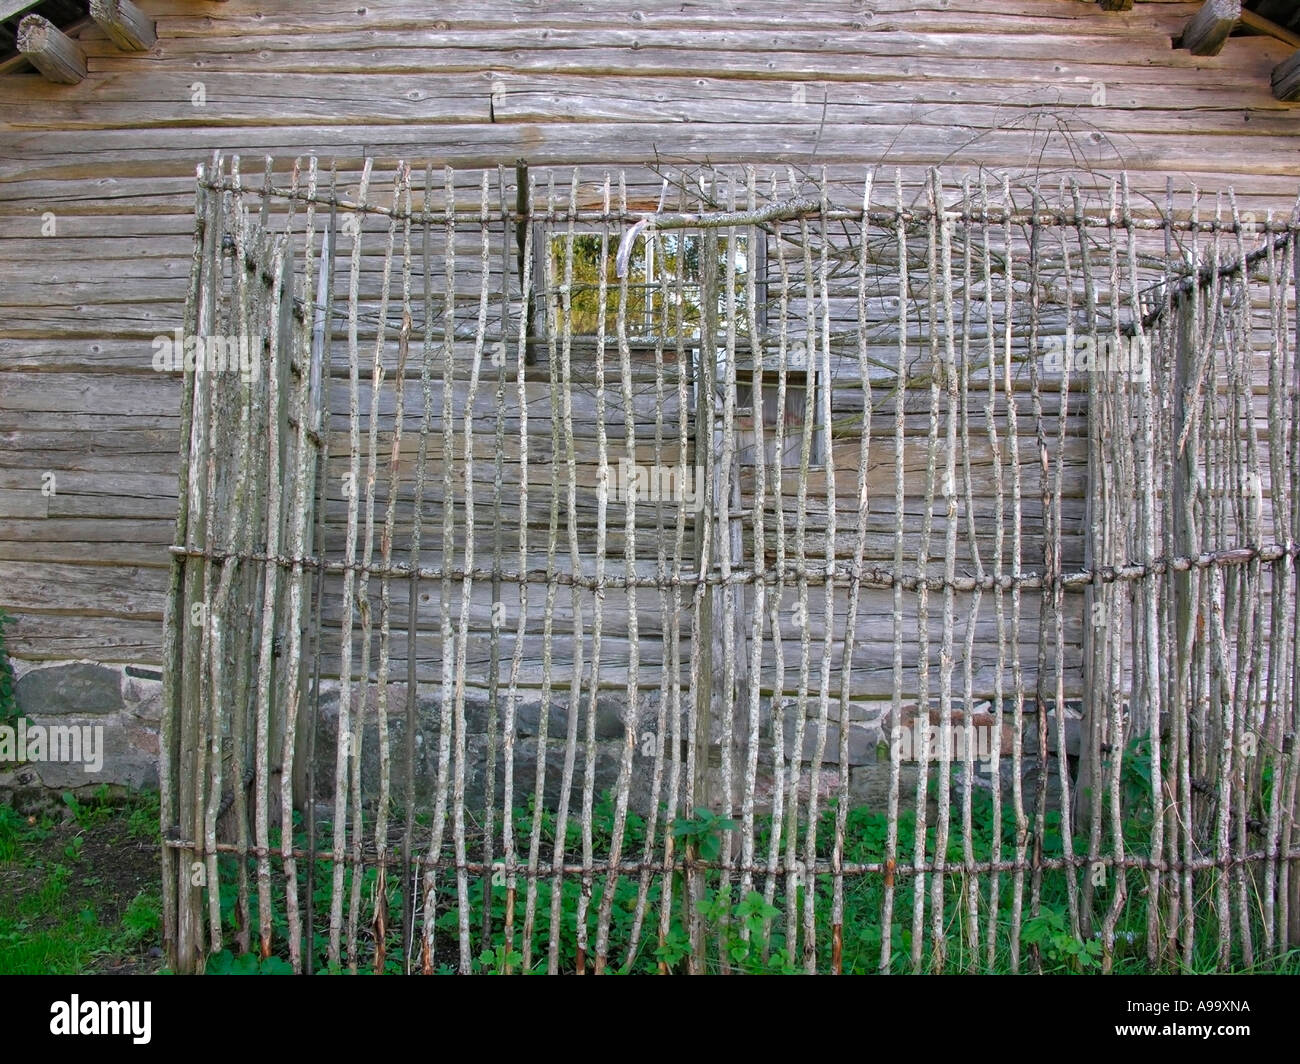 Chicken Wood Cage Stock Photos & Chicken Wood Cage Stock Images - Alamy